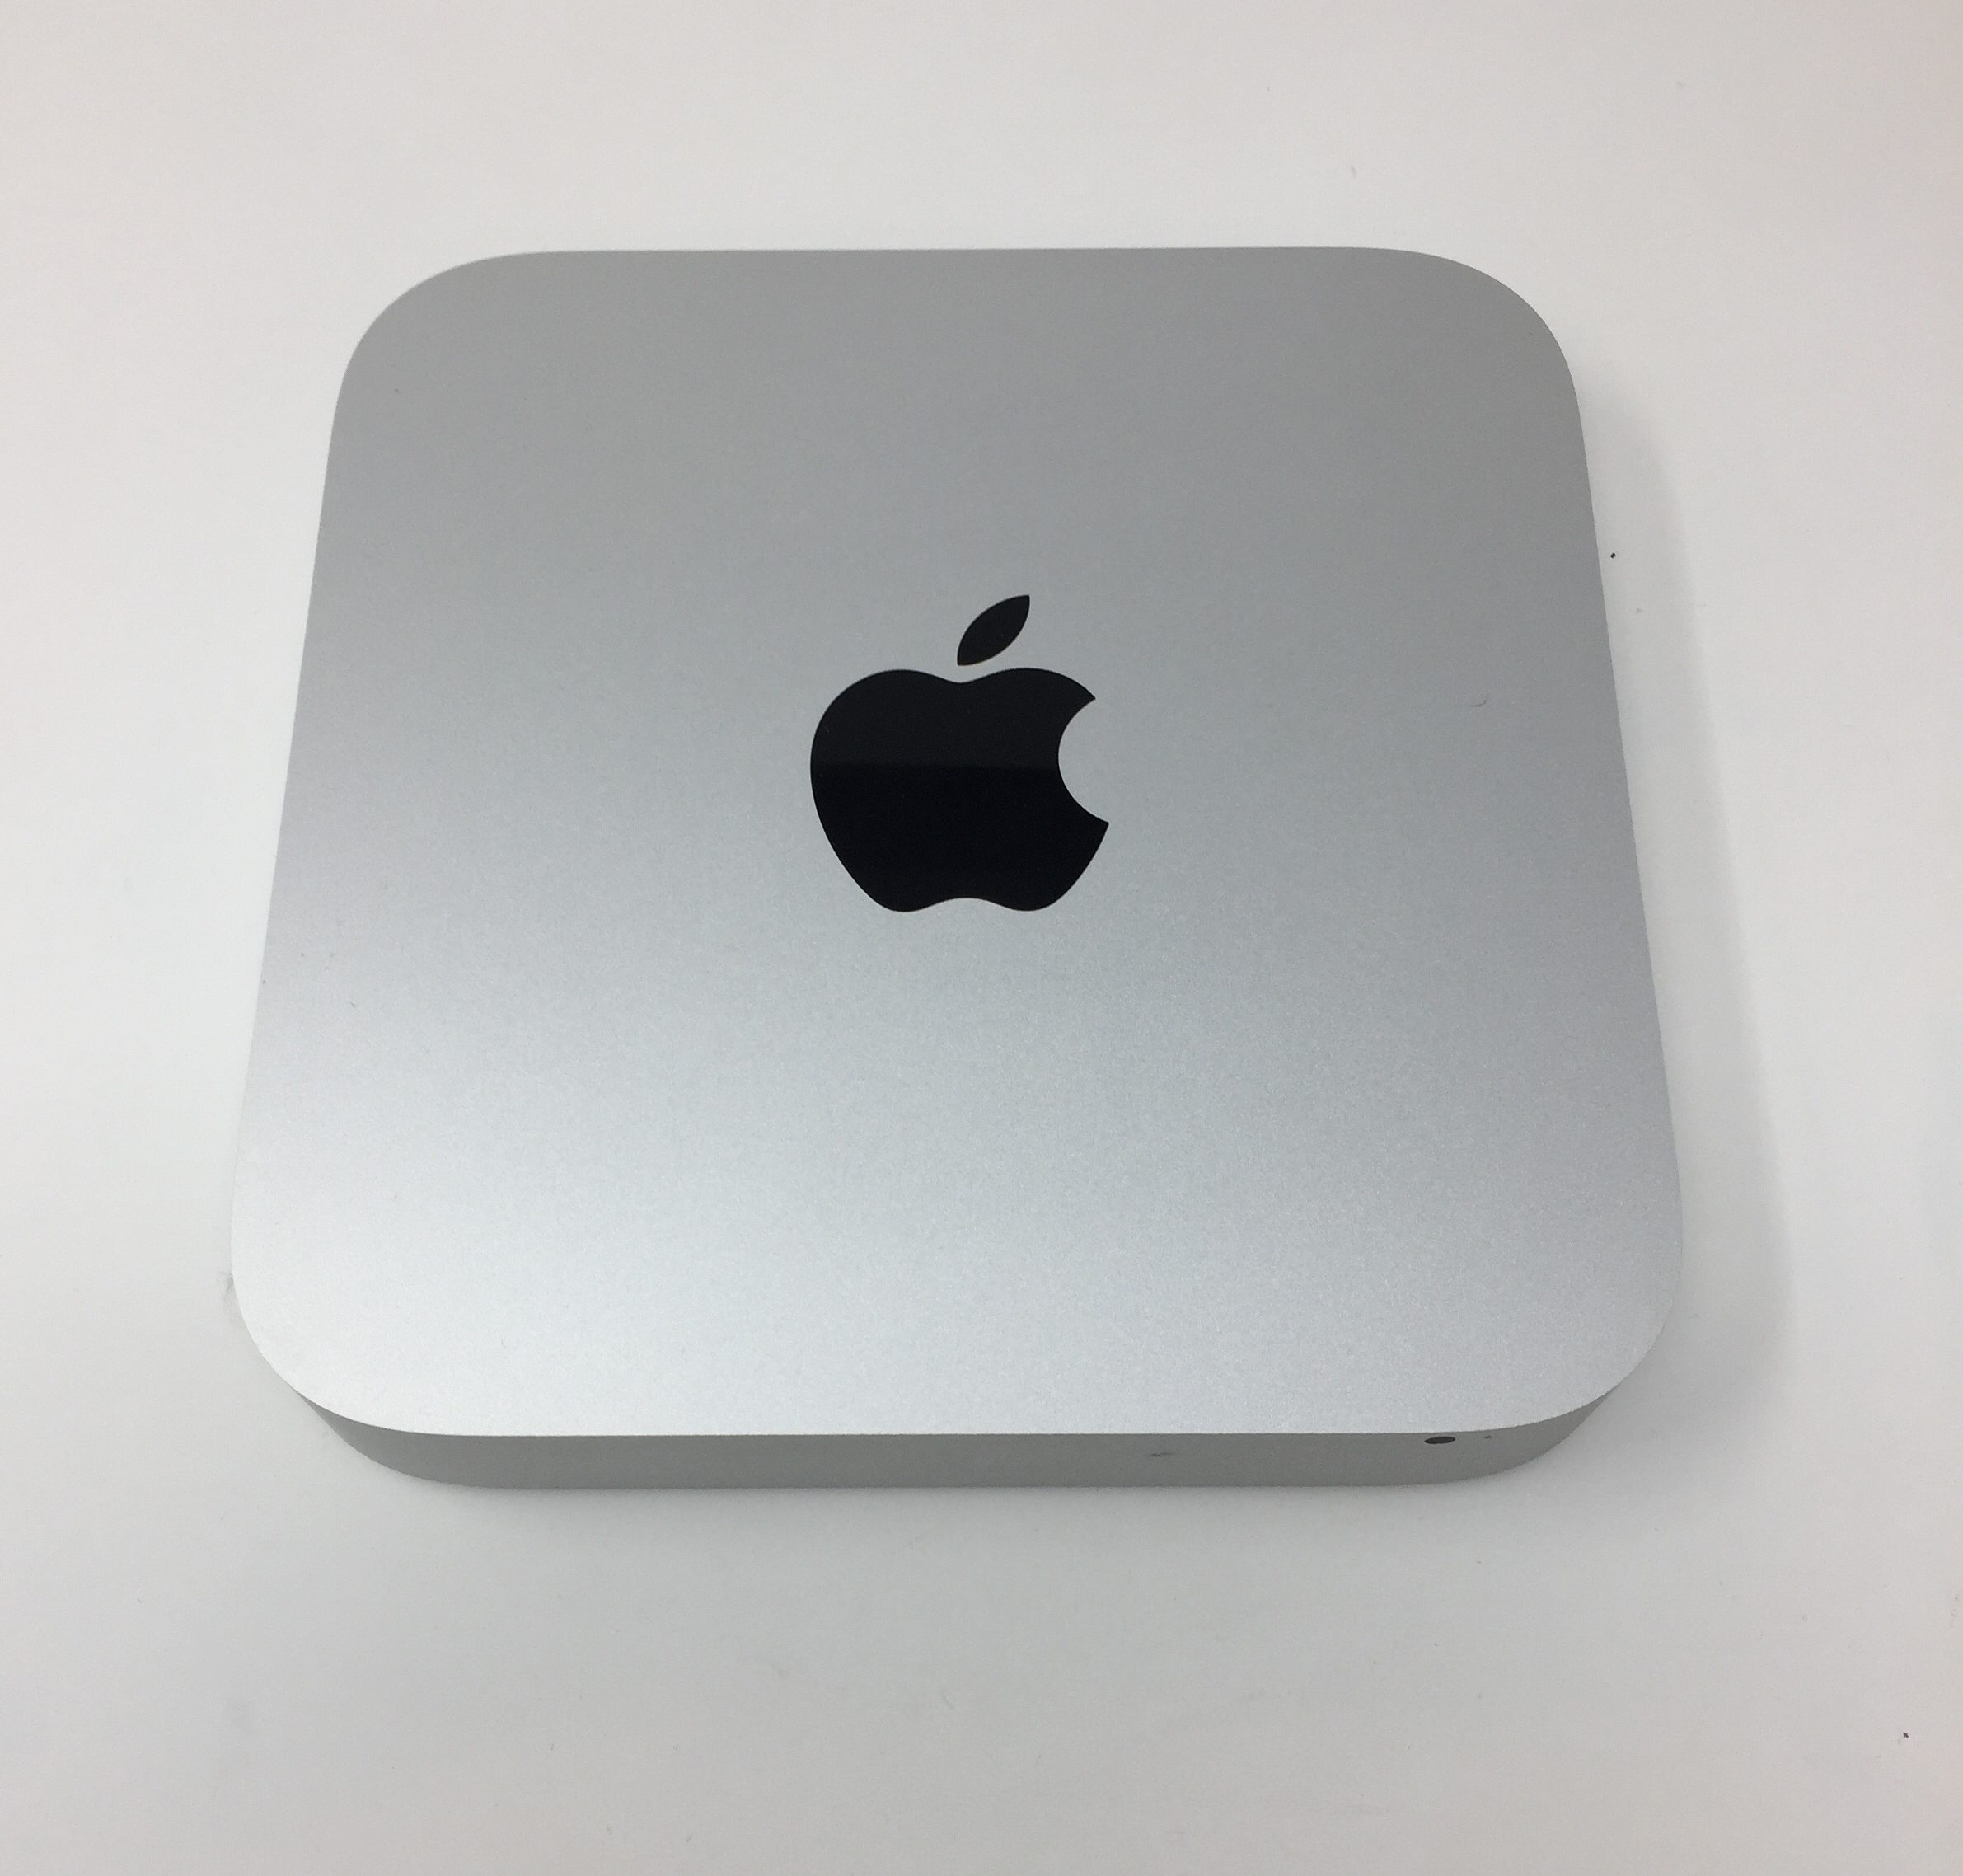 Mac Mini Late 2014 (Intel Core i5 2.8 GHz 8 GB RAM 512 GB SSD), INTEL CORE I5 2,8 GHZ, 8 GB 1600MHZ DDR3 , SSD 512 GB, imagen 1